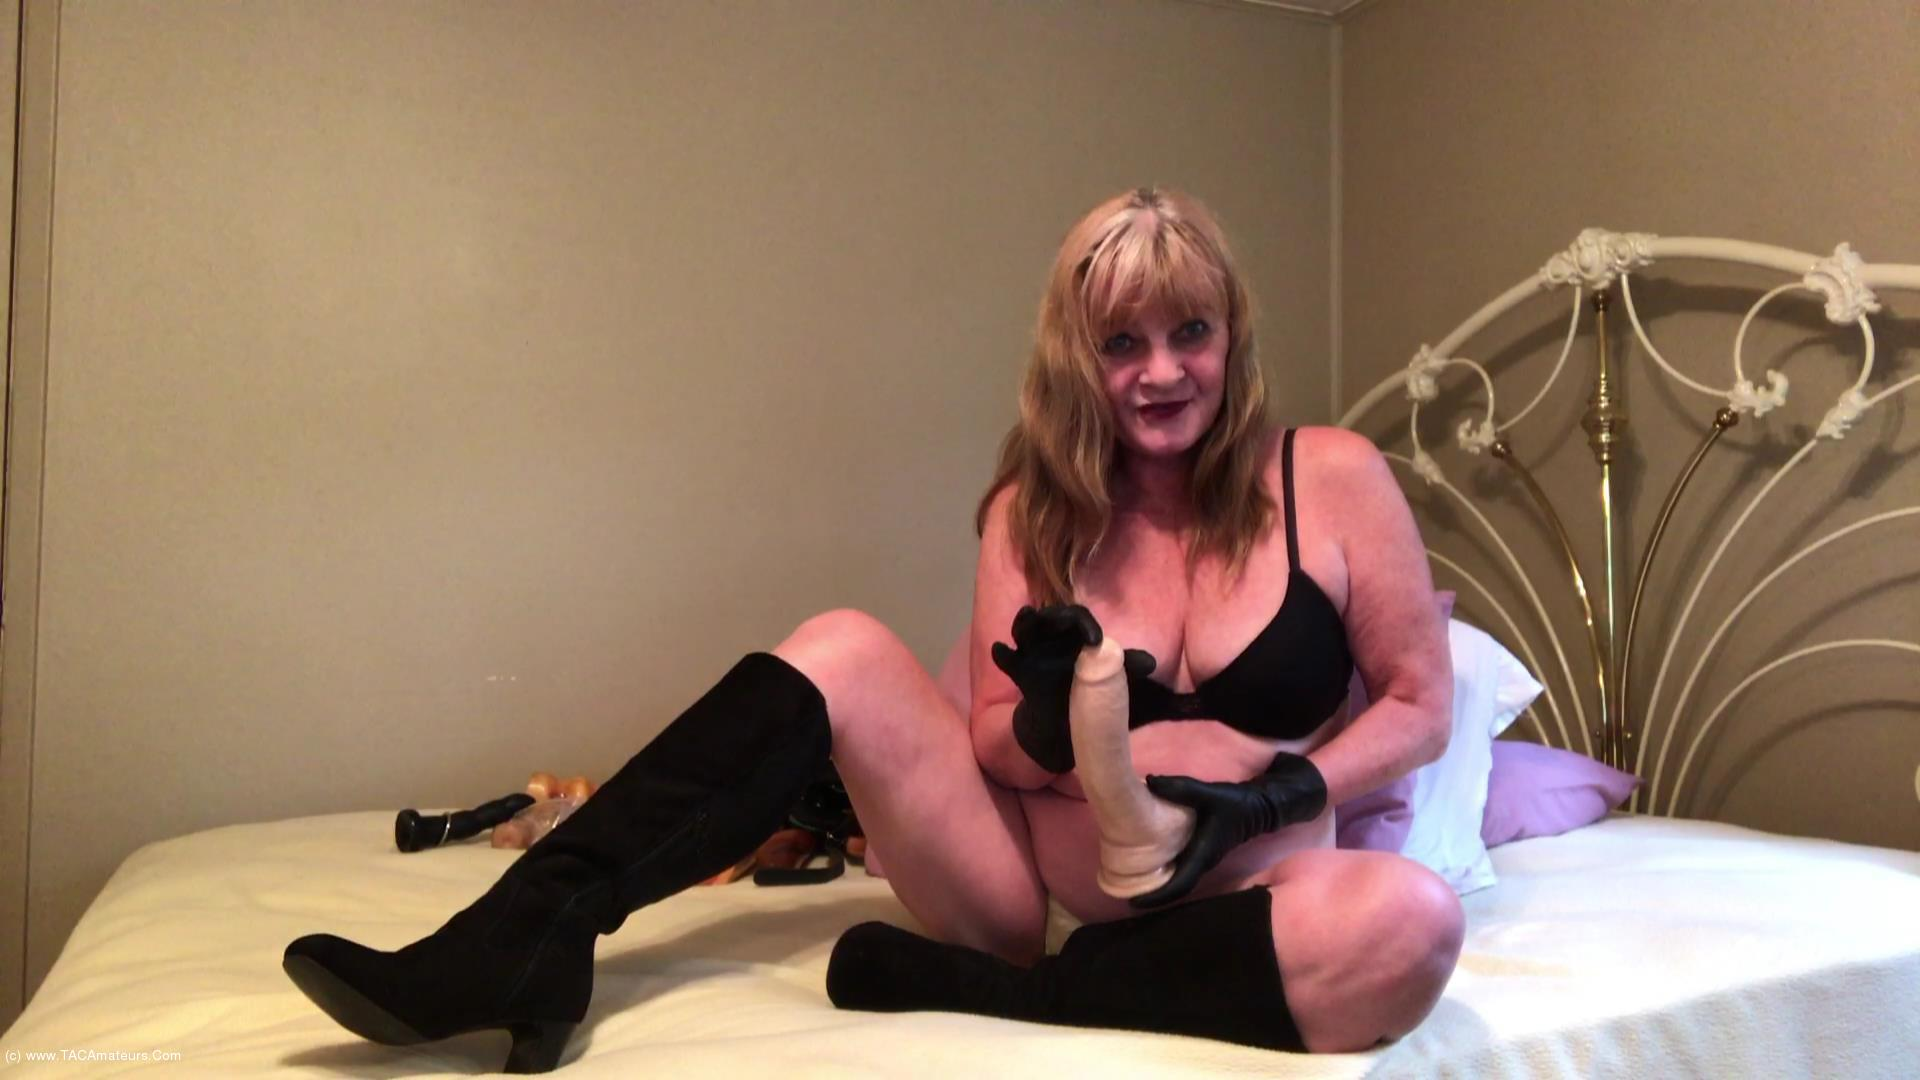 CougarBabeJolee - Masturbation Instructions Using My Hot Leather Gloves scene 2